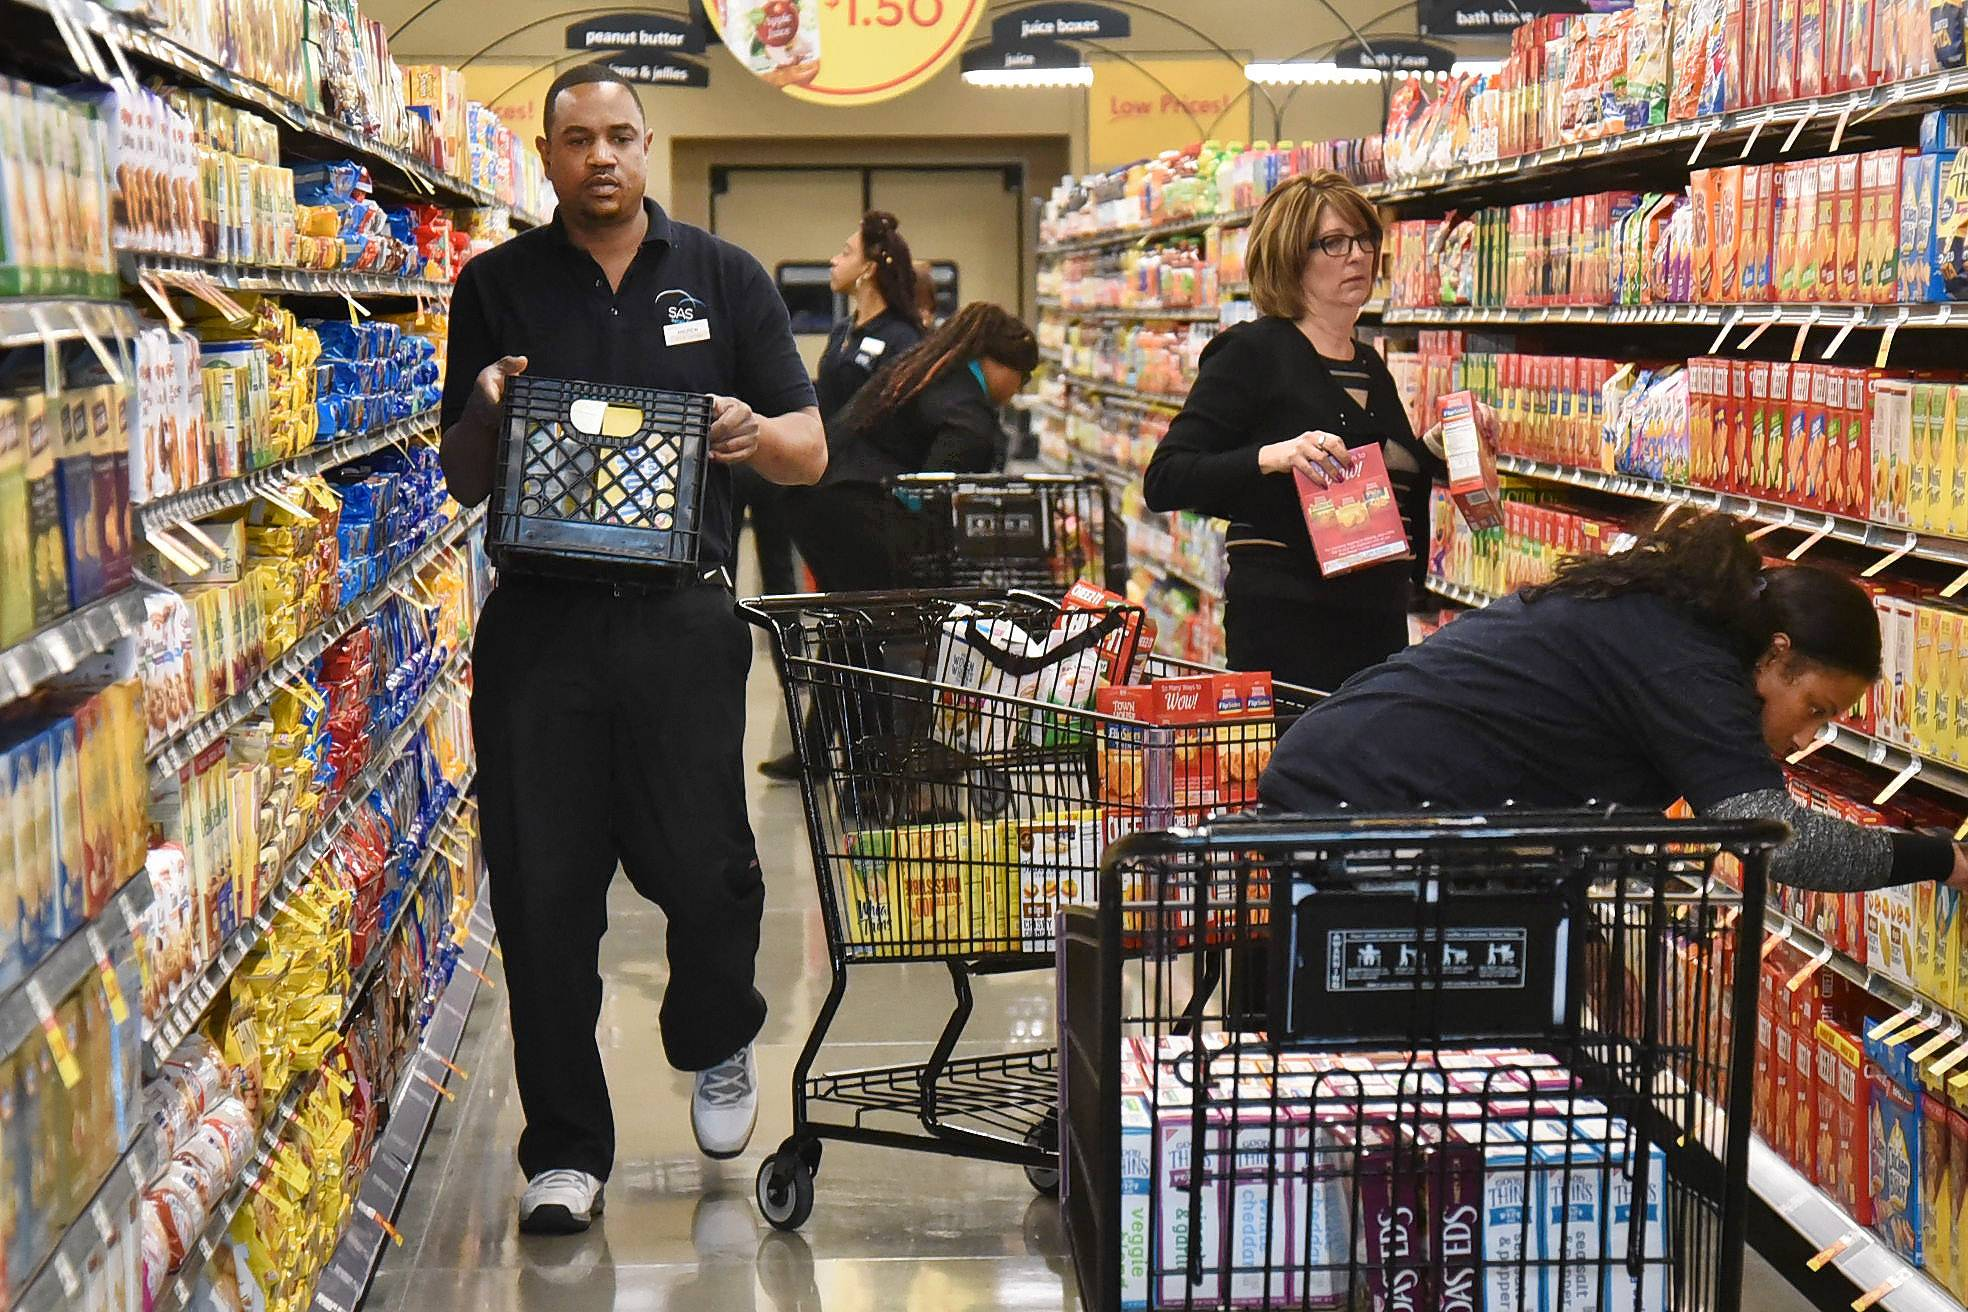 Andrew Young, left, of SAS food distributors, and fellow workers were busy stocking shelves for Tuesday's public opening of Mariano's newest location in Des Plaines.